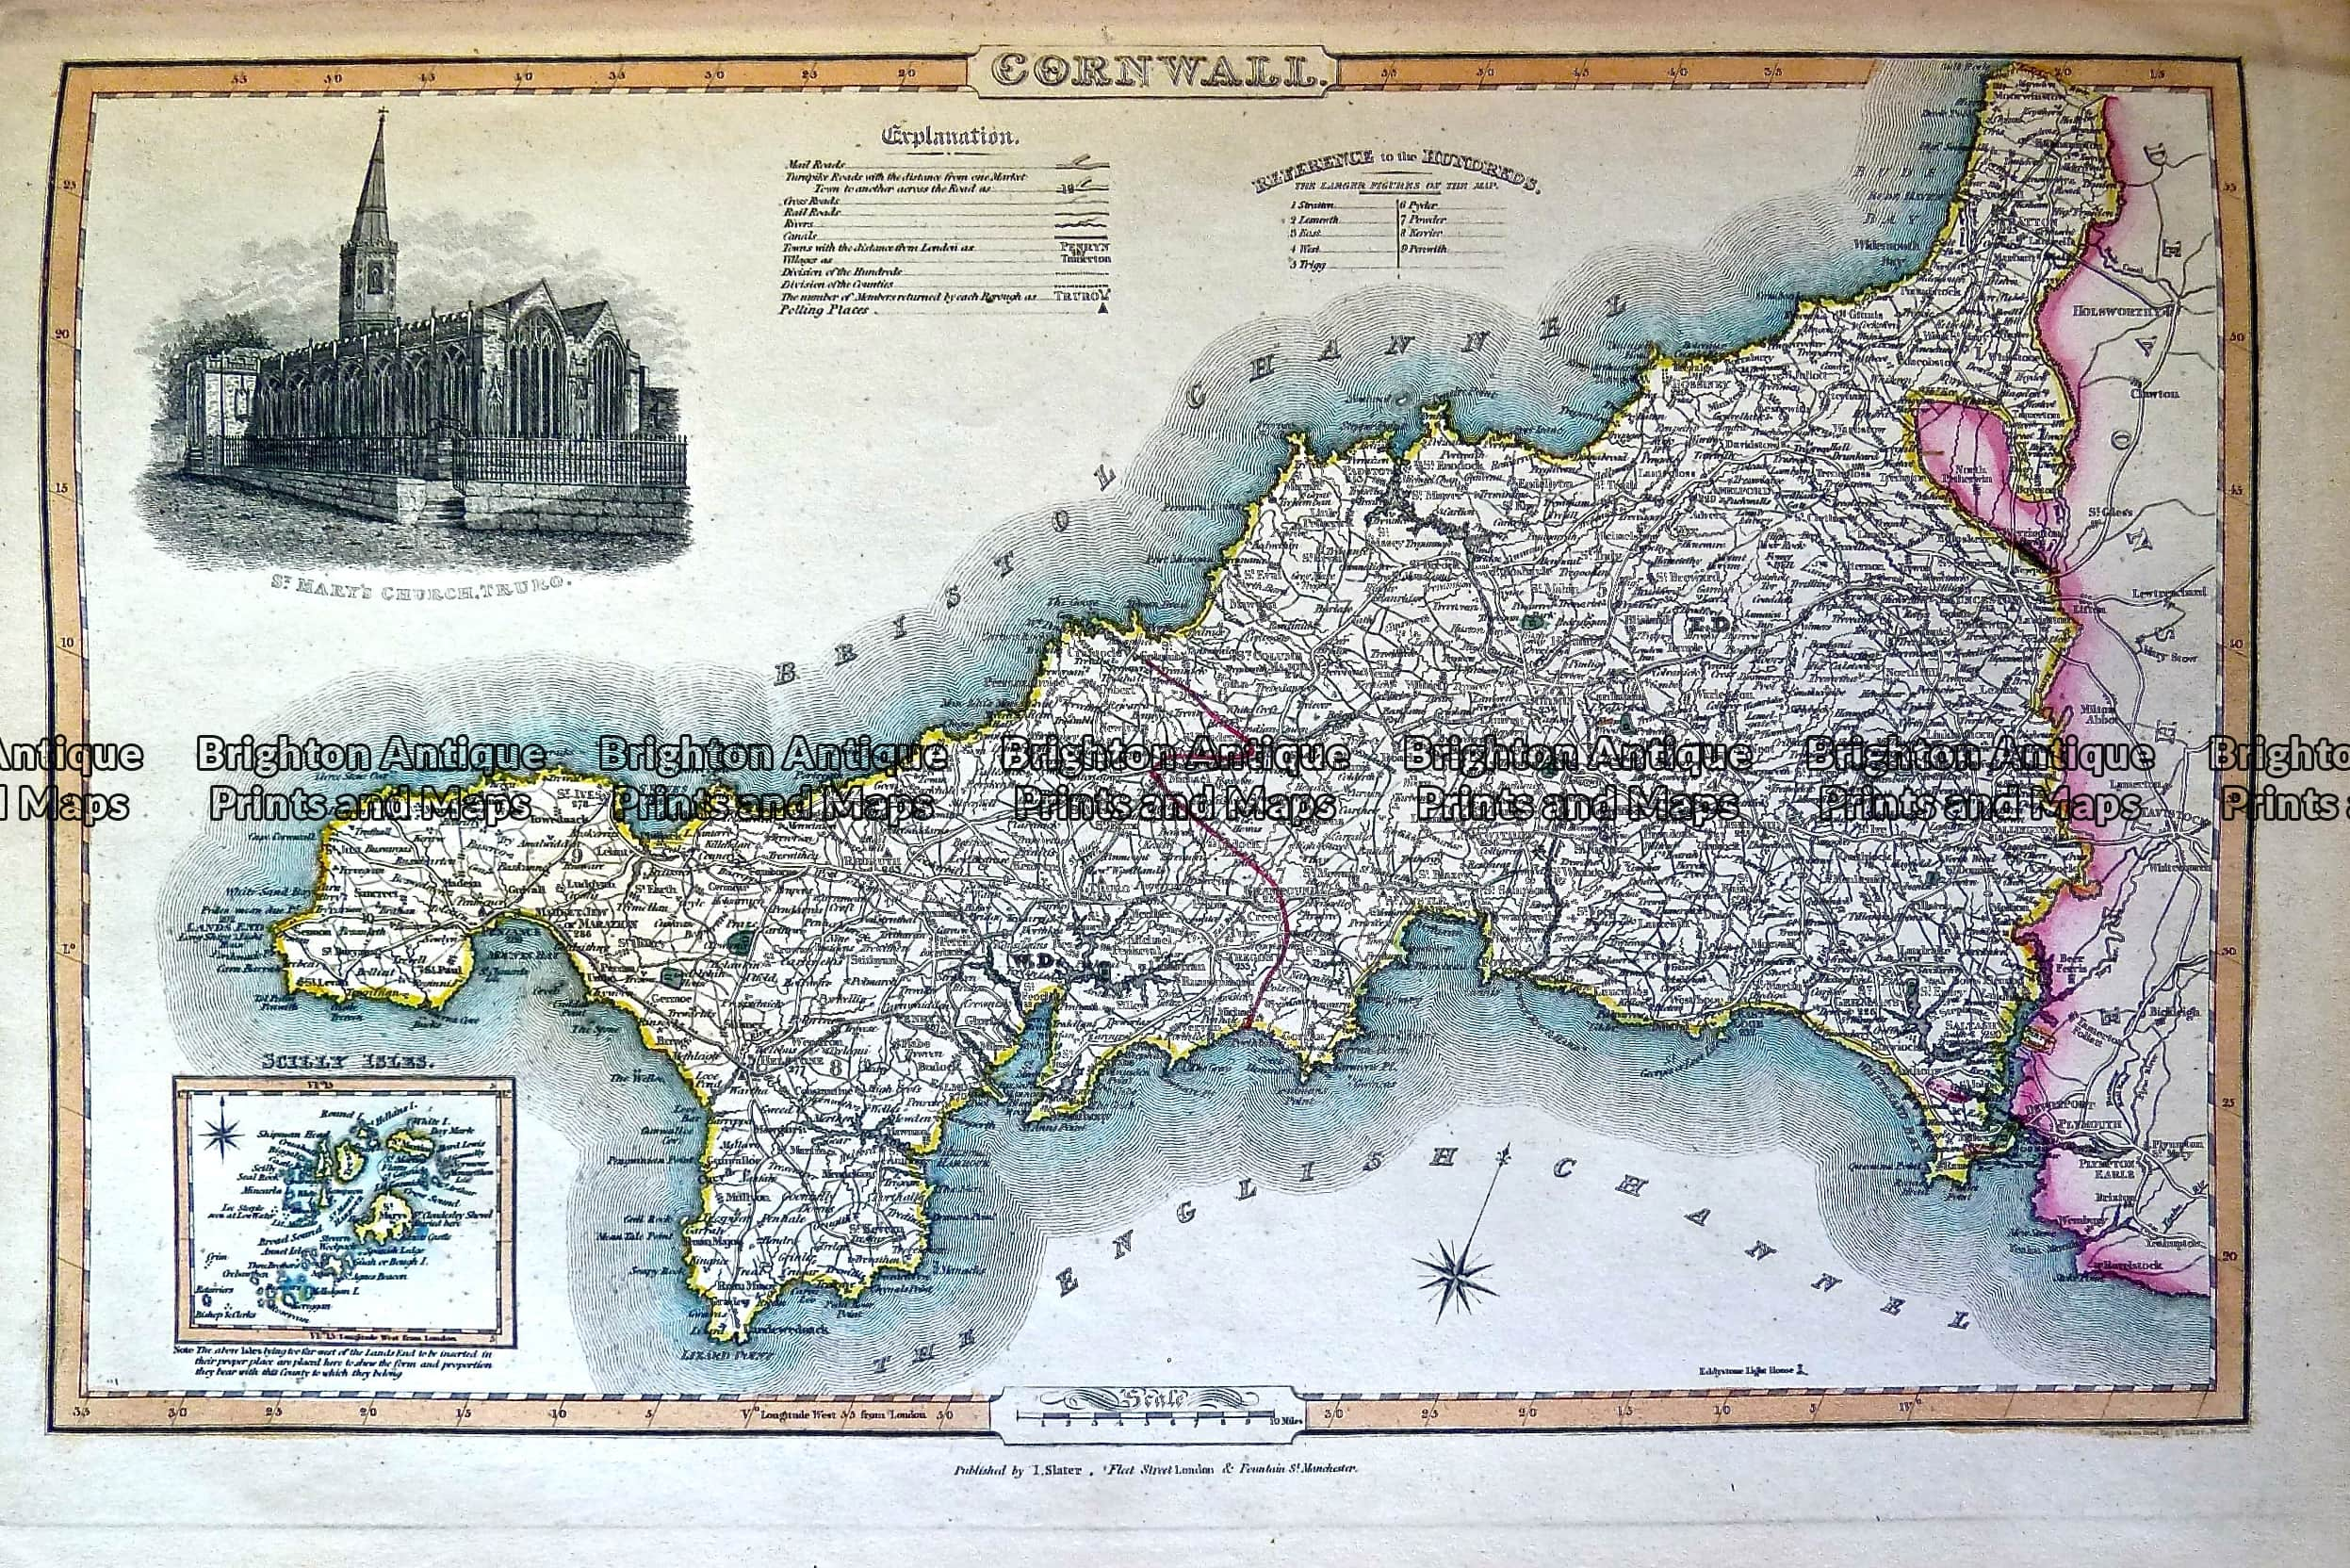 Map Of England Showing Cornwall.Antique Map 230 485 County Of Cornwall By Slater C 1846 Brighton